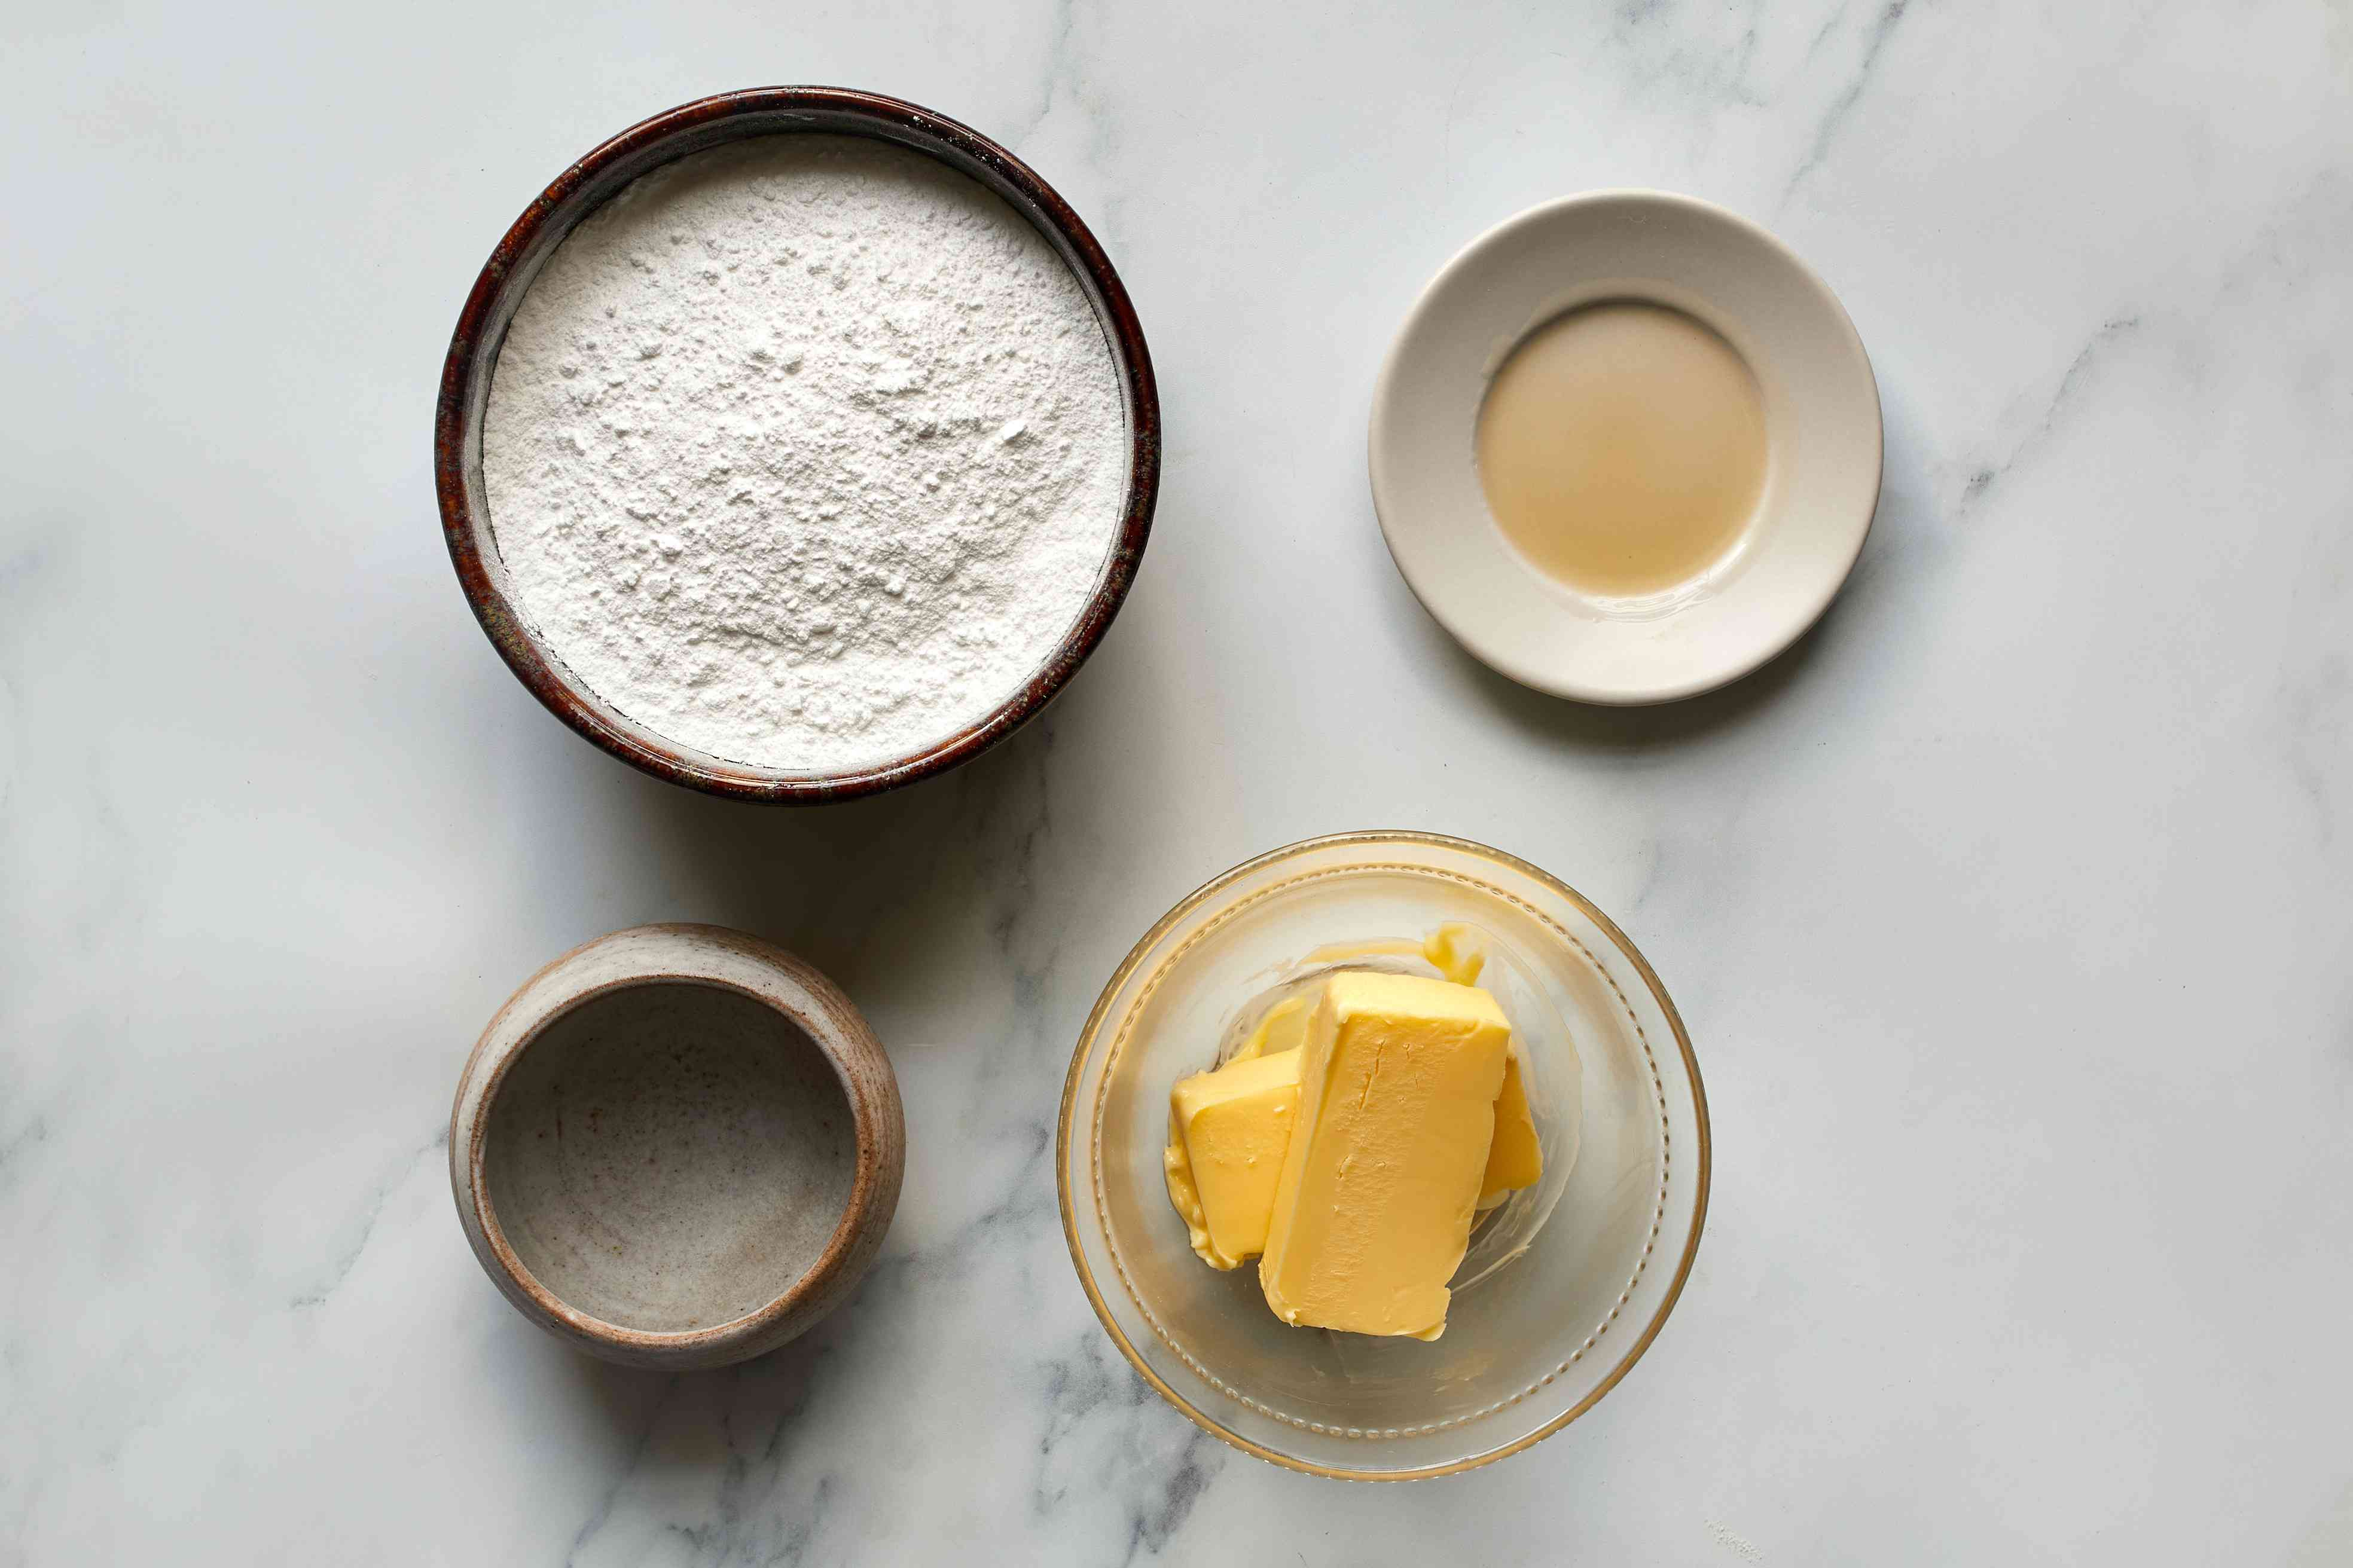 Brown Butter Icing ingredients